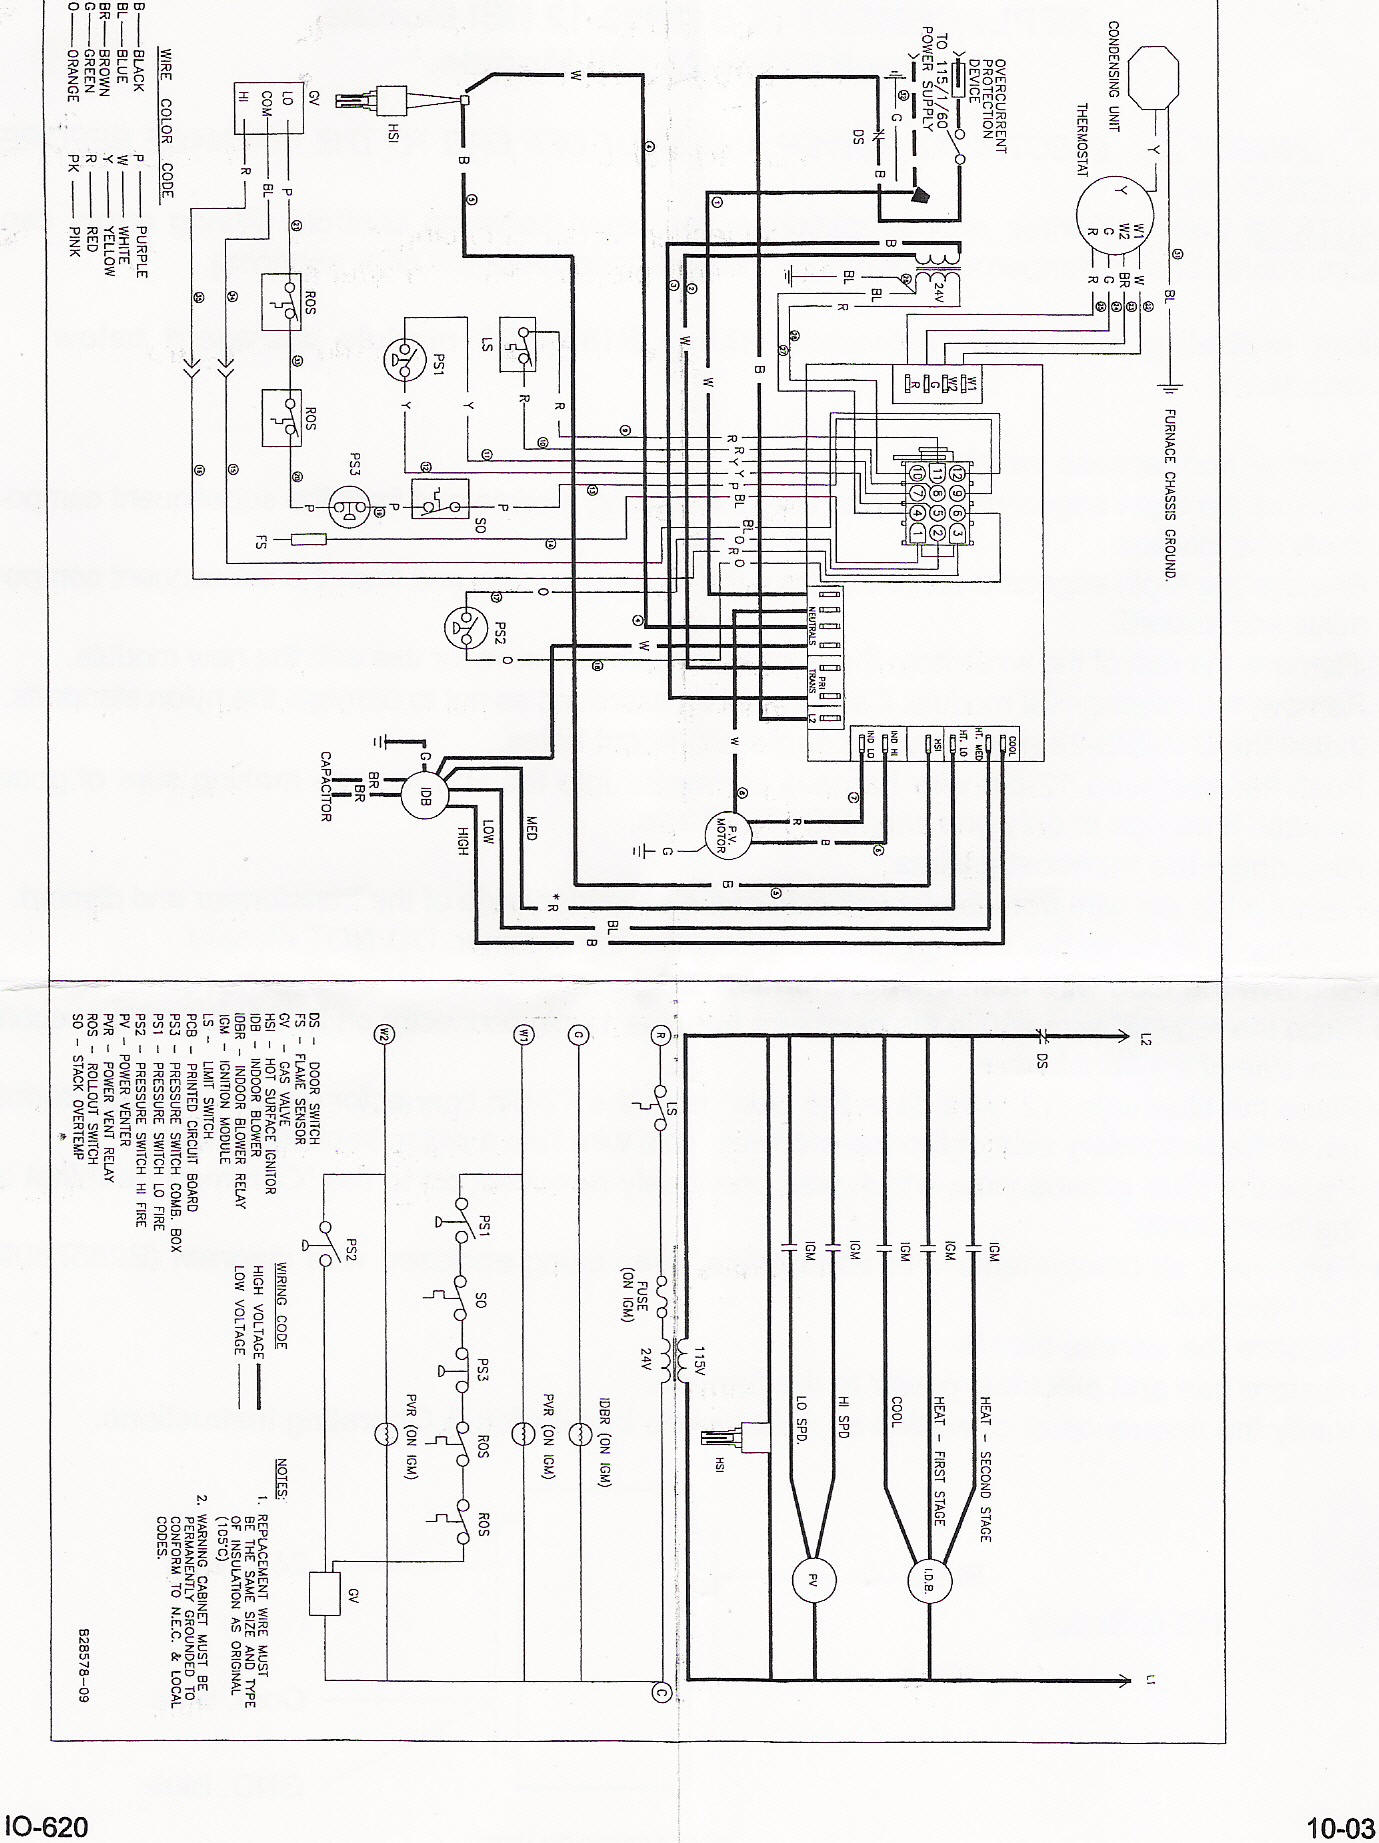 White Rodgers Fan Relay Wiring Diagram likewise Goodman Board B18099 23 furthermore Singer Furnace Wiring Diagram besides Honeywell Rth6580wf Wiring Diagram also Bryant Air Conditioner Wiring Diagrams. on honeywell thermostat wiring heat pump